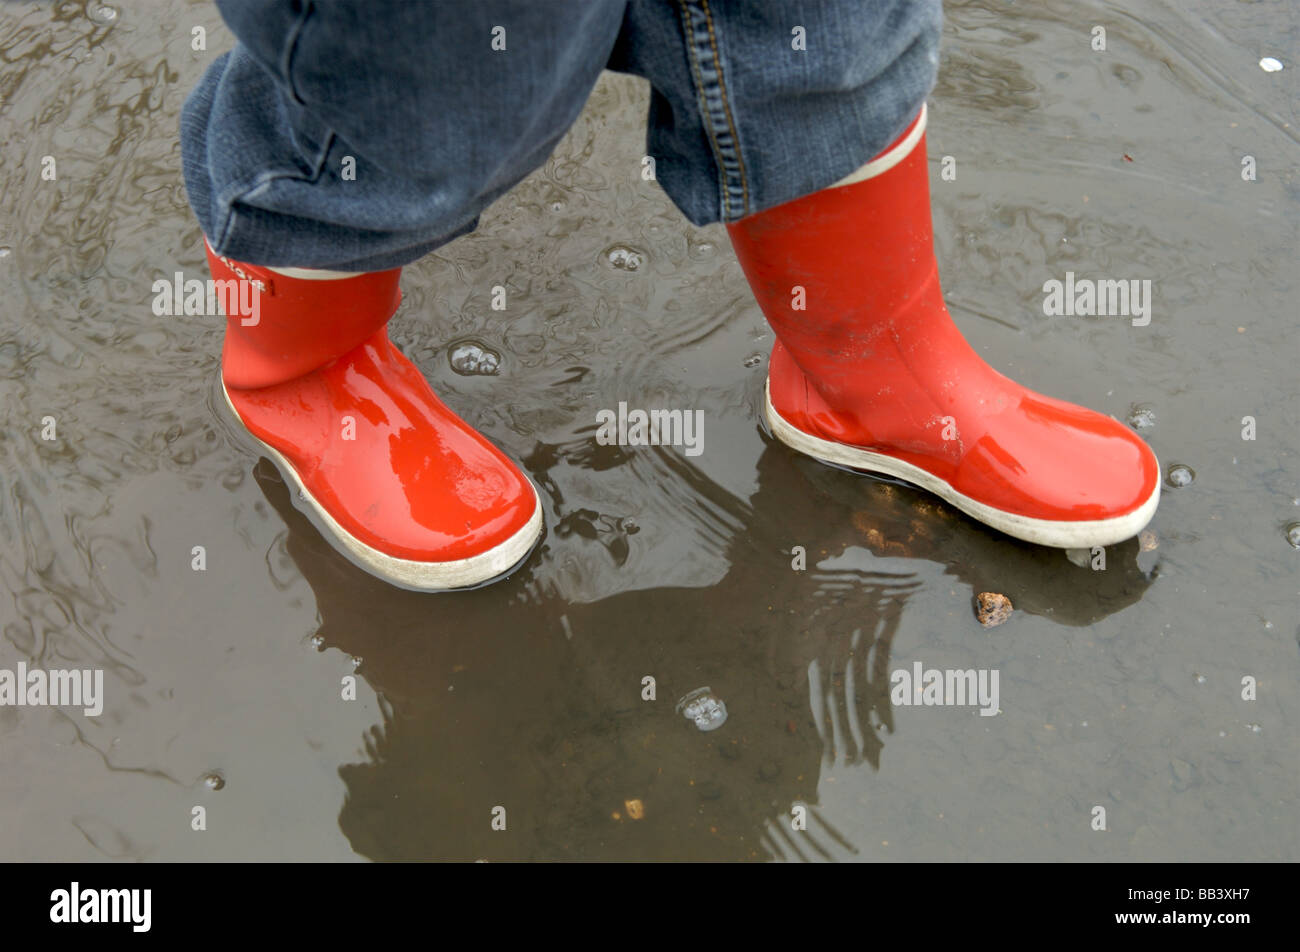 A young child in red wellington boots